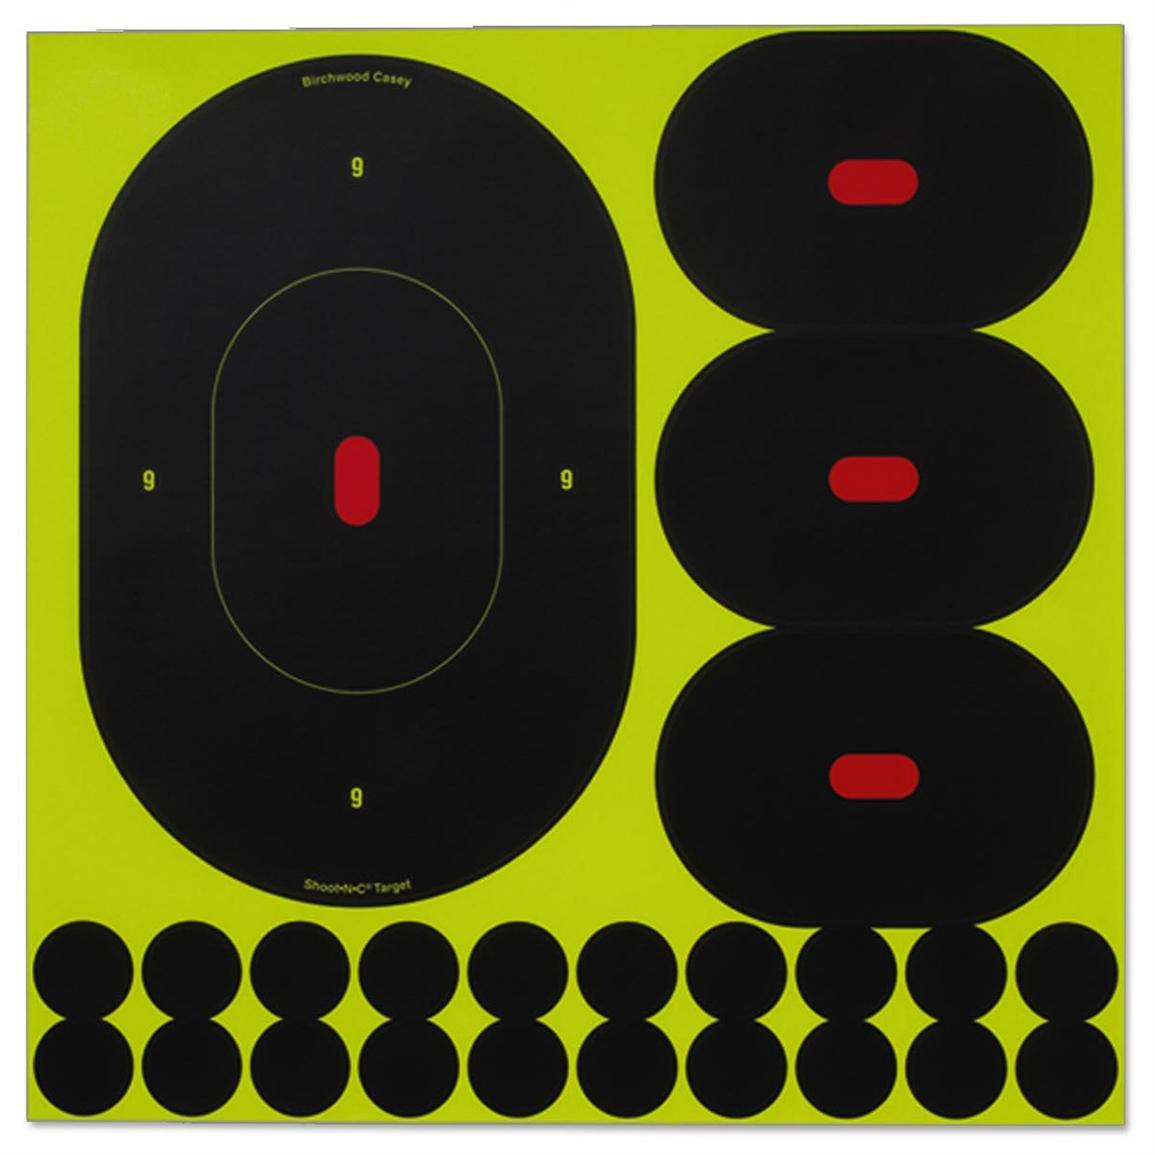 Birchwood Casey® Shoot-N-C® 9x4 inch Silhouette Assortment Target